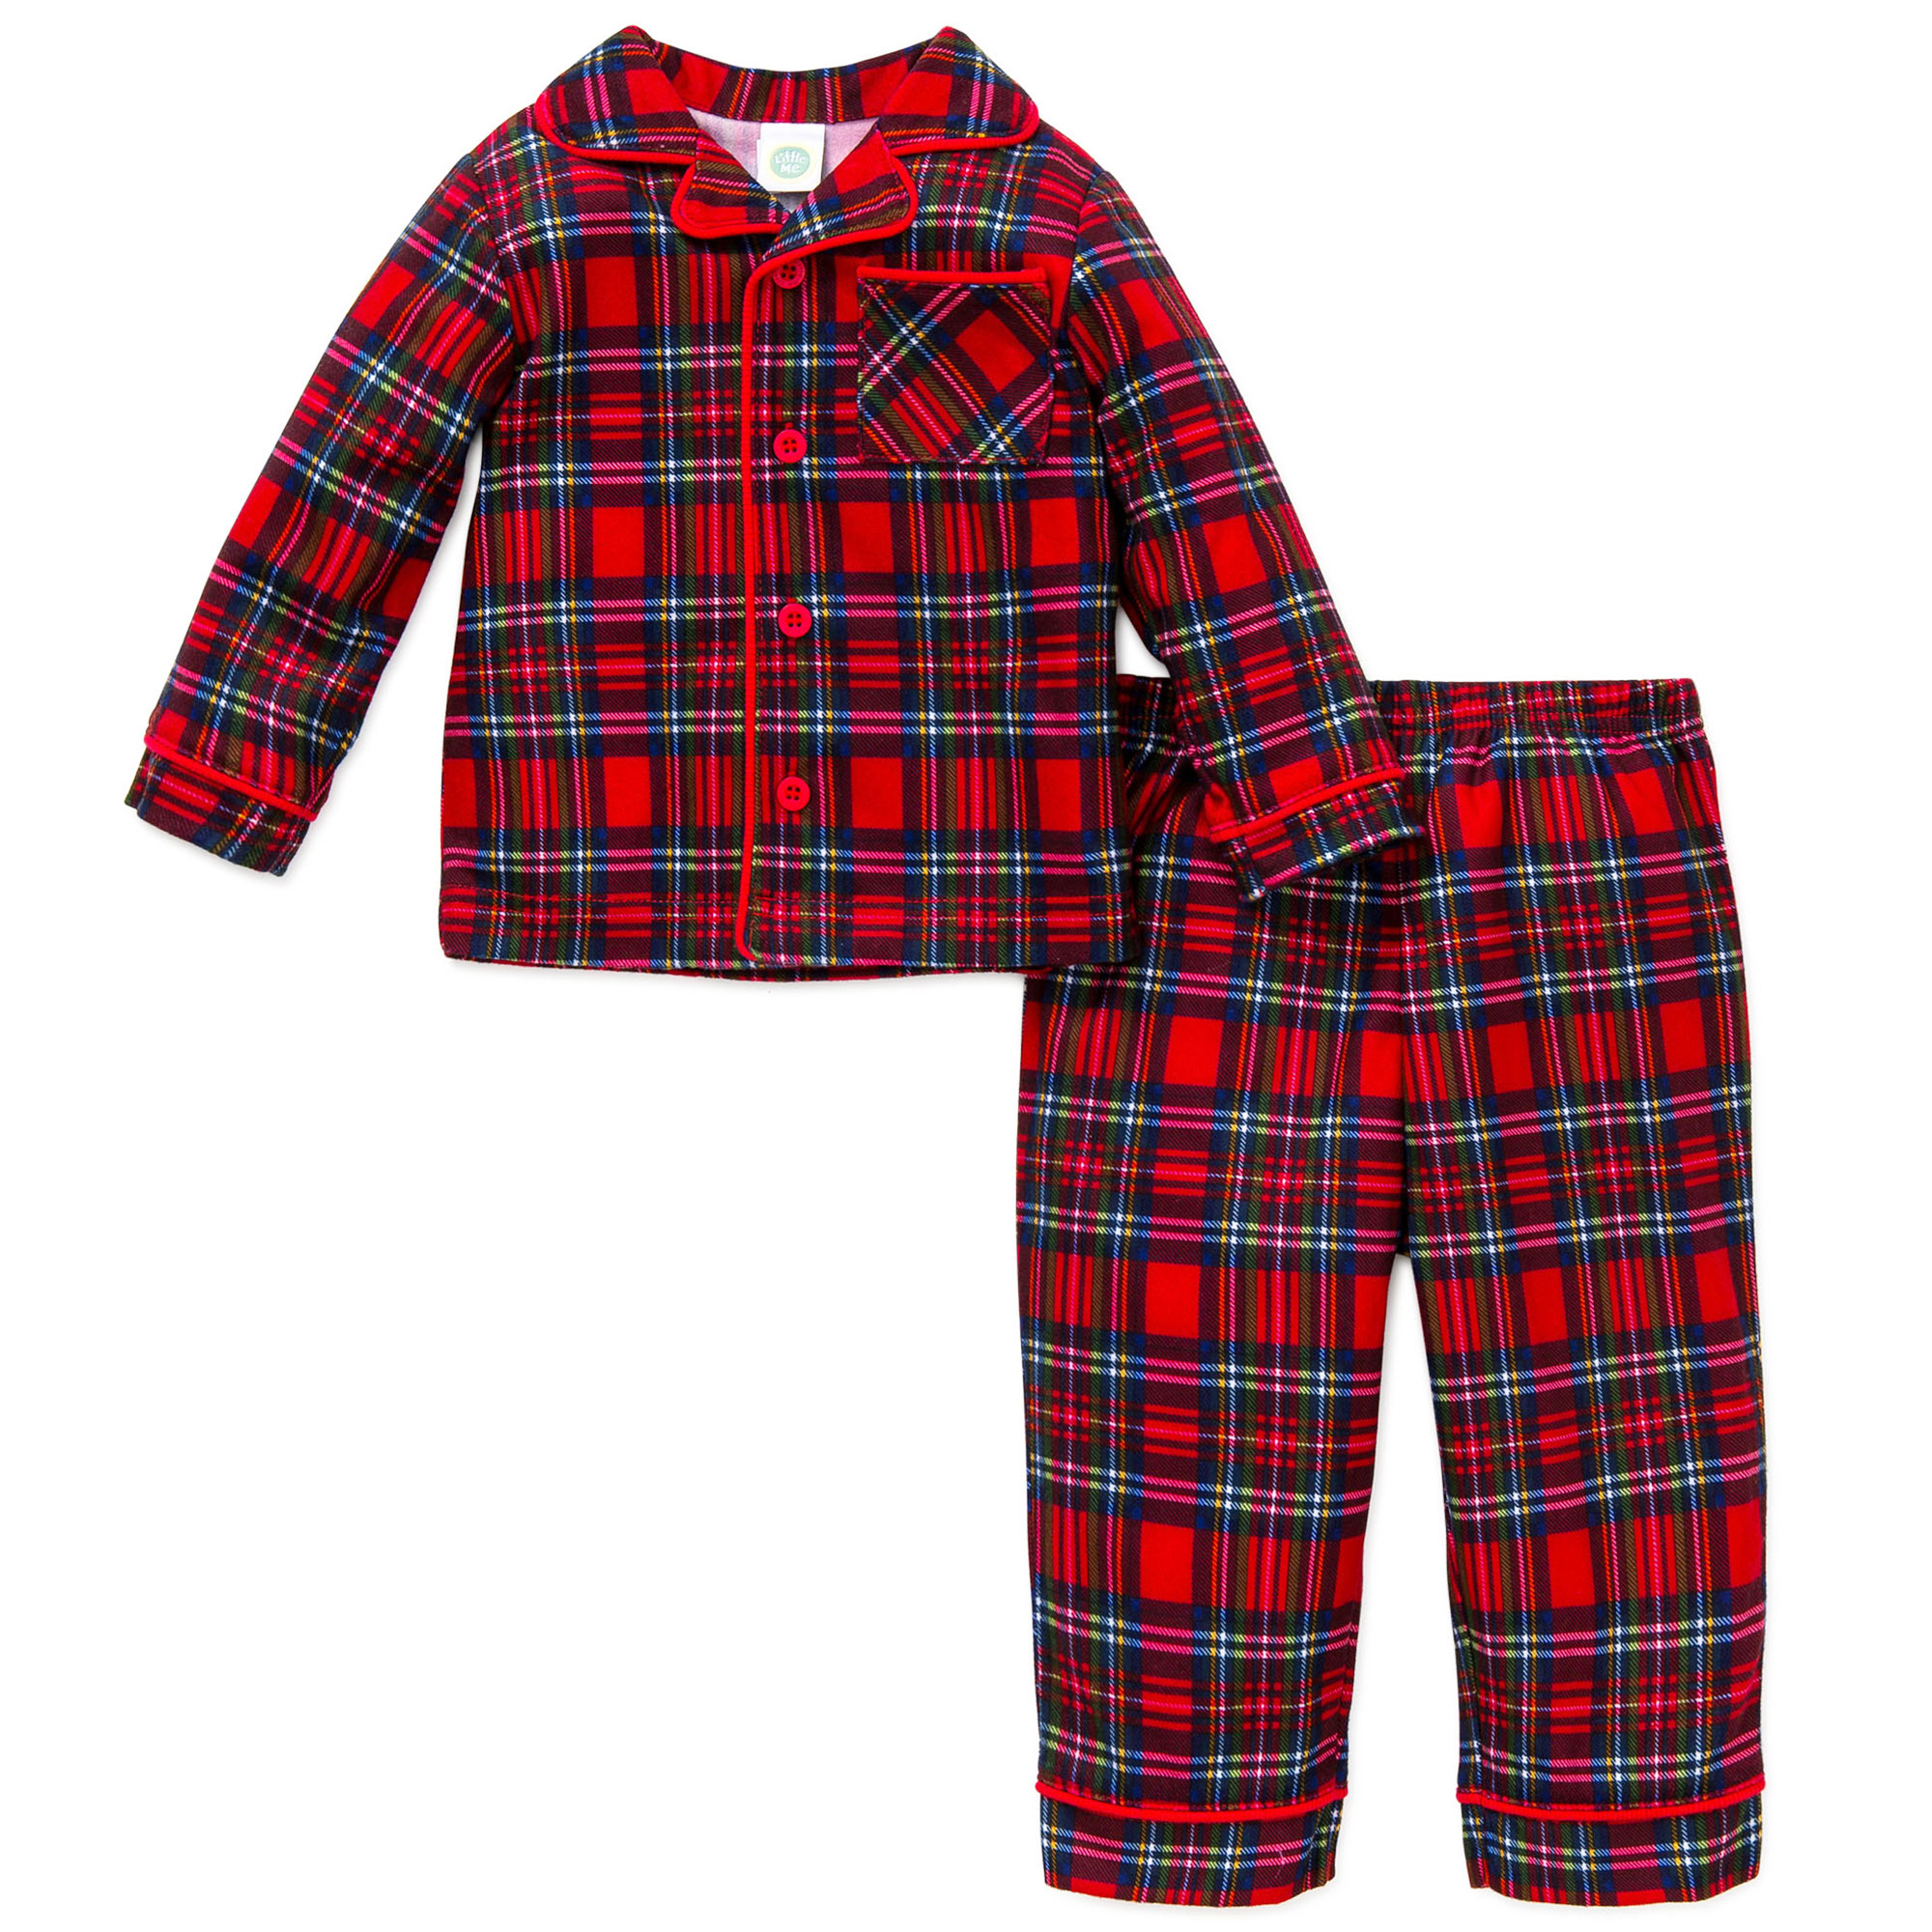 Joe Boxer Boys' Pajama Shirt & Pants - Dino Today, Monster Tomorrow. Sold by Sears. $ $ Disney Boy's Mickey Mouse Fleece Pajama Set. Sold by 0549sahibi.tk Holiday Infant Boys Christmas Tree Reindeer Fleece Blanket Sleeper Sleep & Play. Sold by The Primrose Lane.